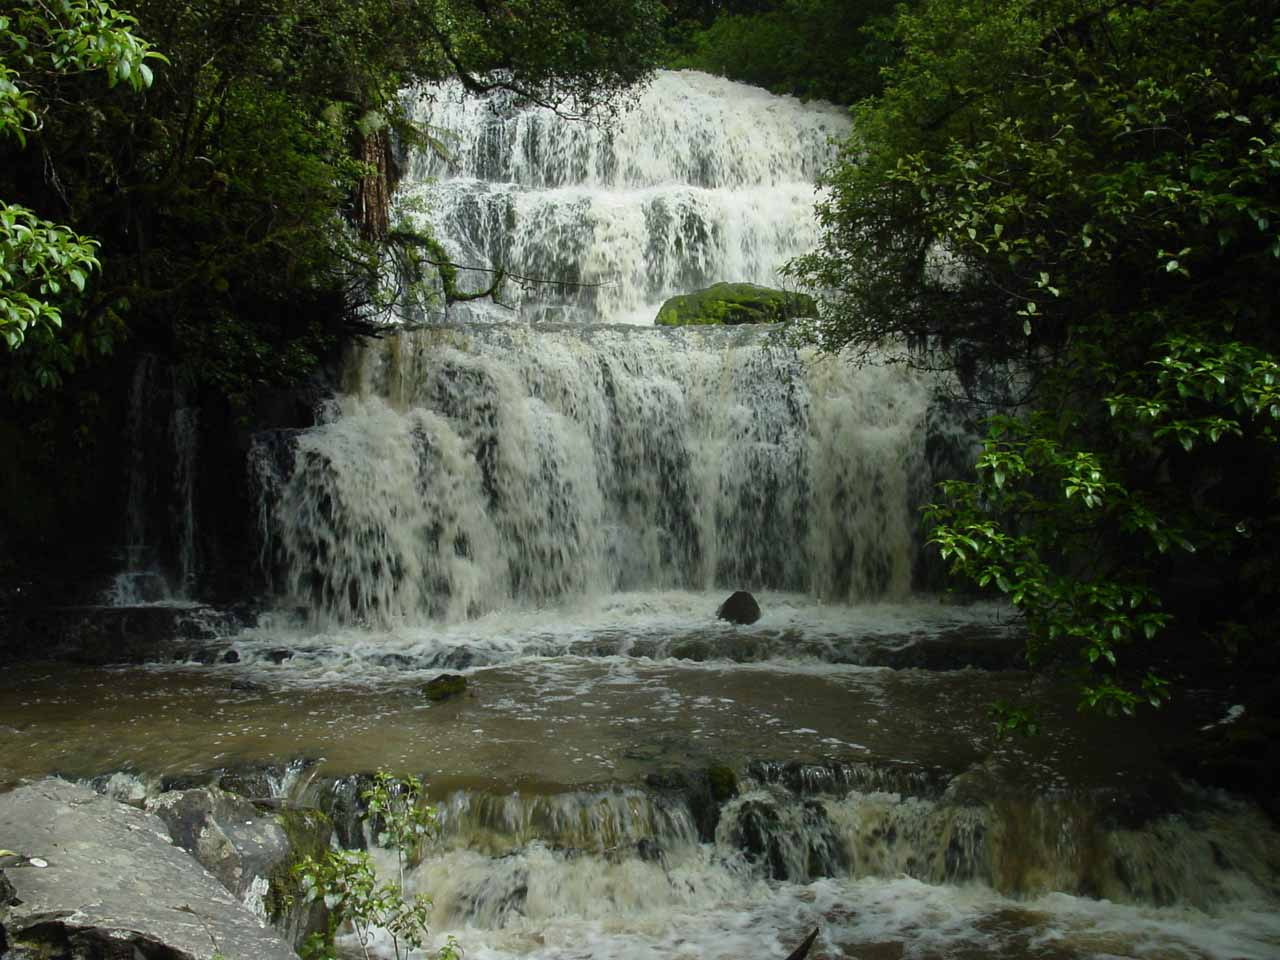 Our first look at Purakaunui Falls from the main viewing deck in December 2004